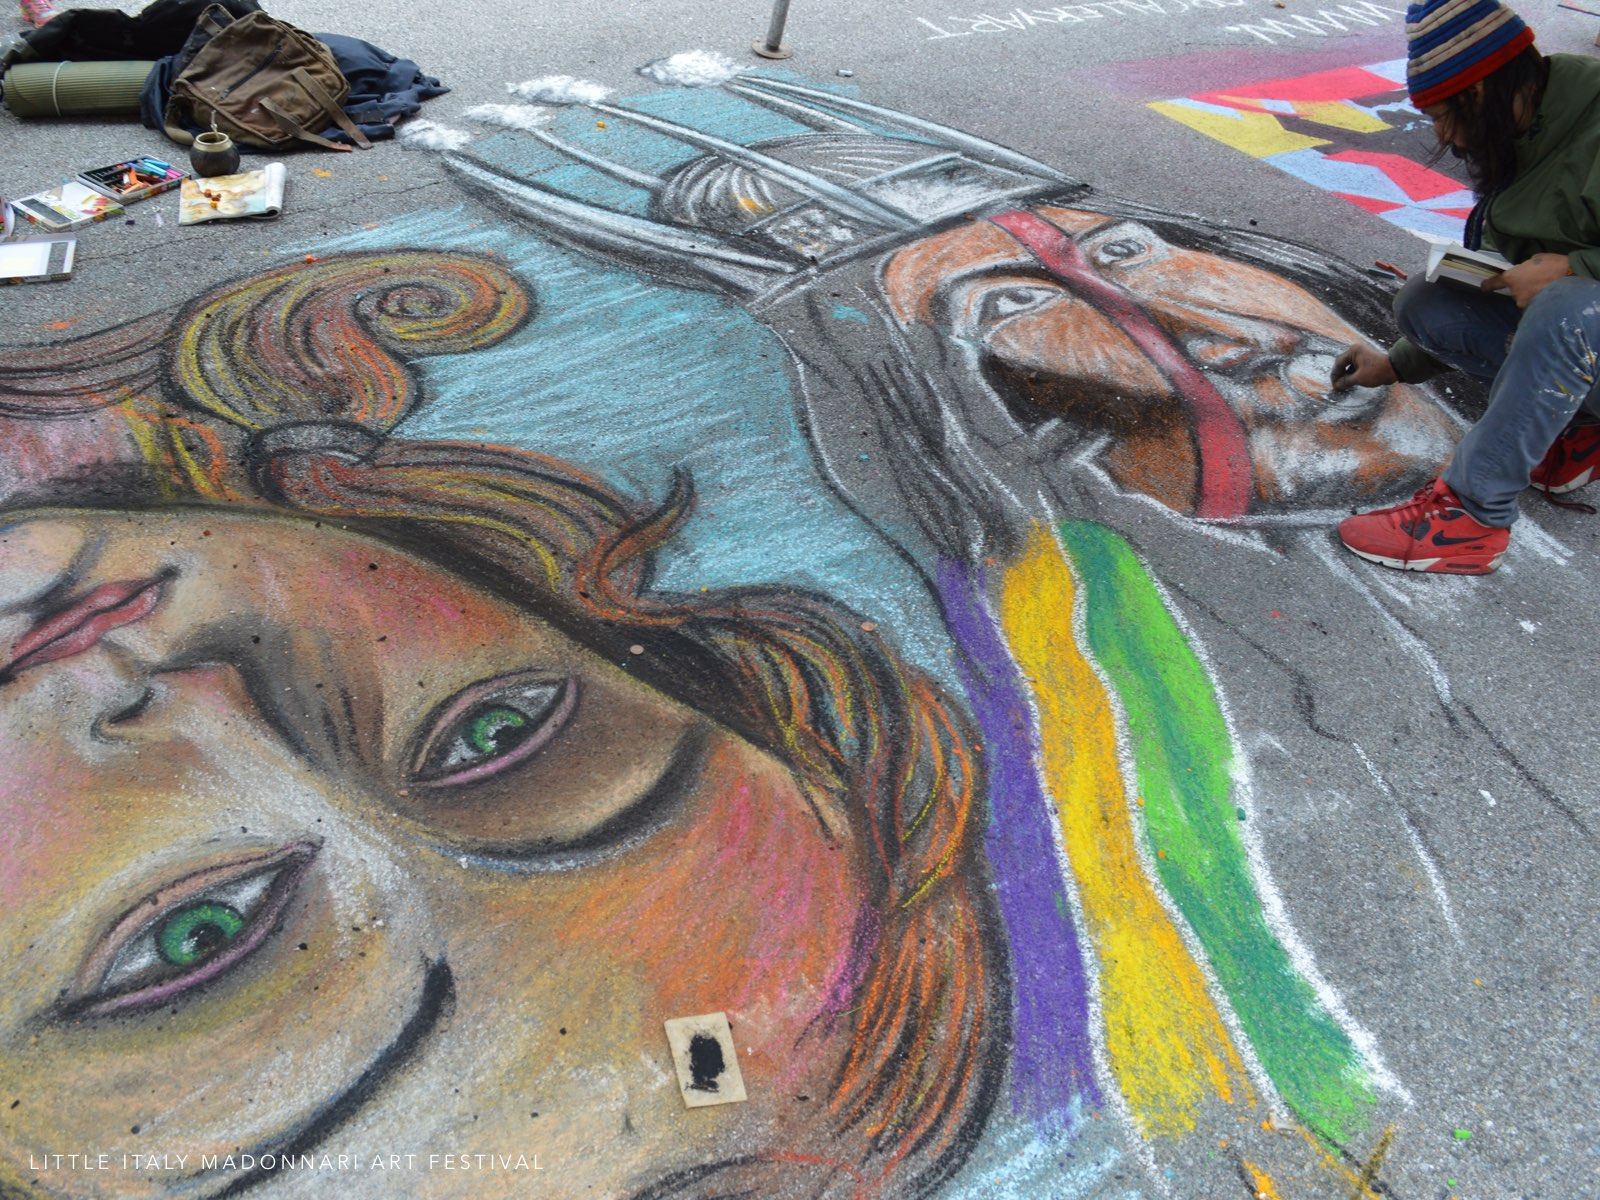 Little Italy Madonnari Art Festival